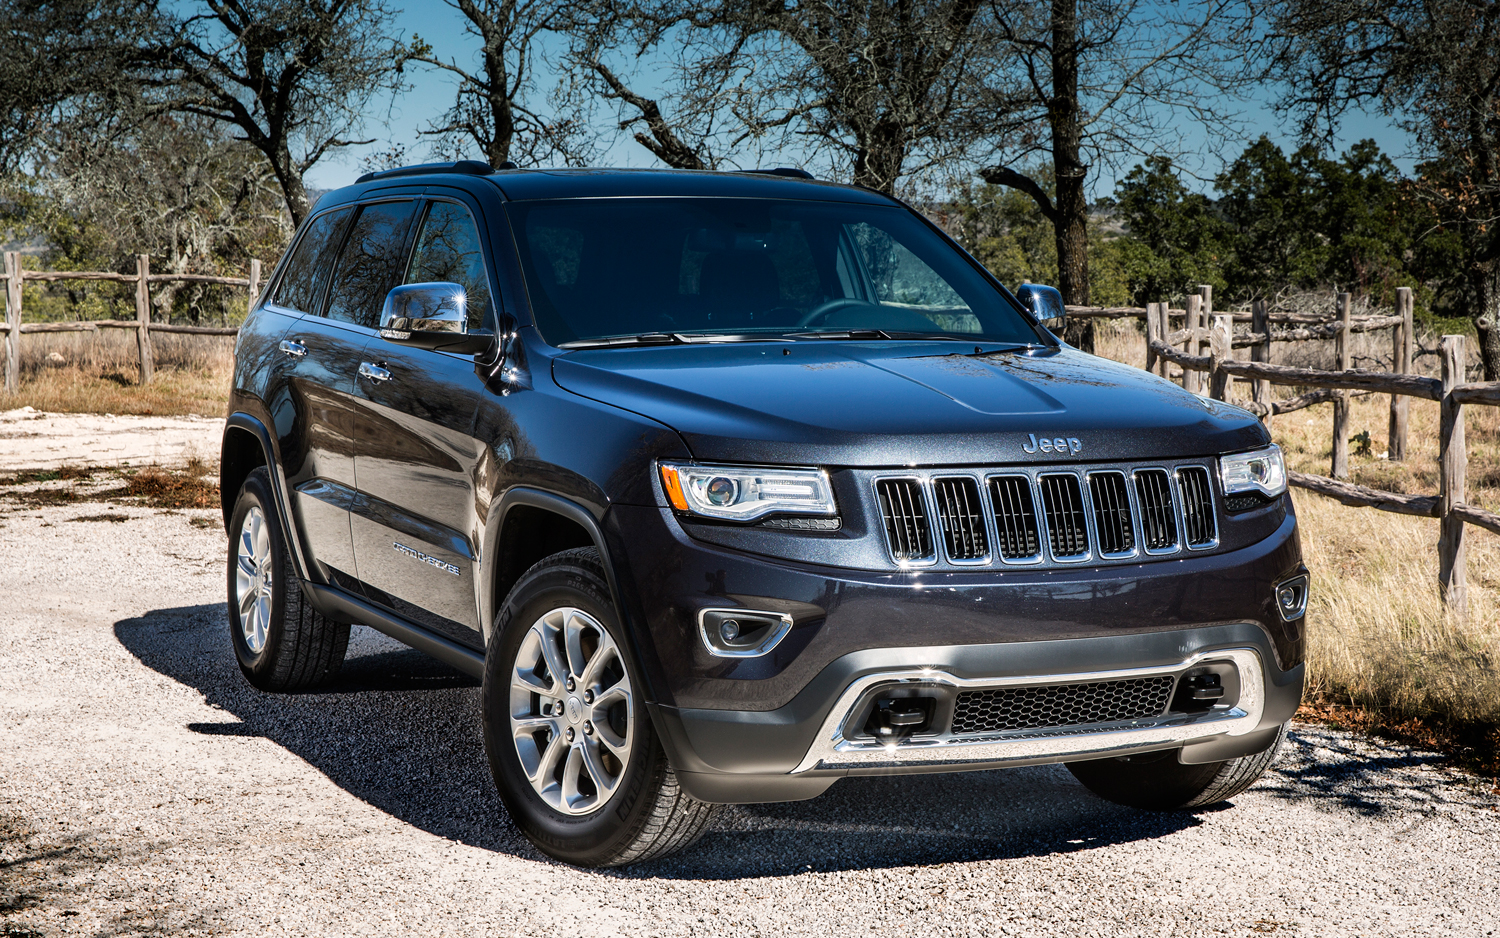 jeep 2014 Compass feeling better on rough terrain #4